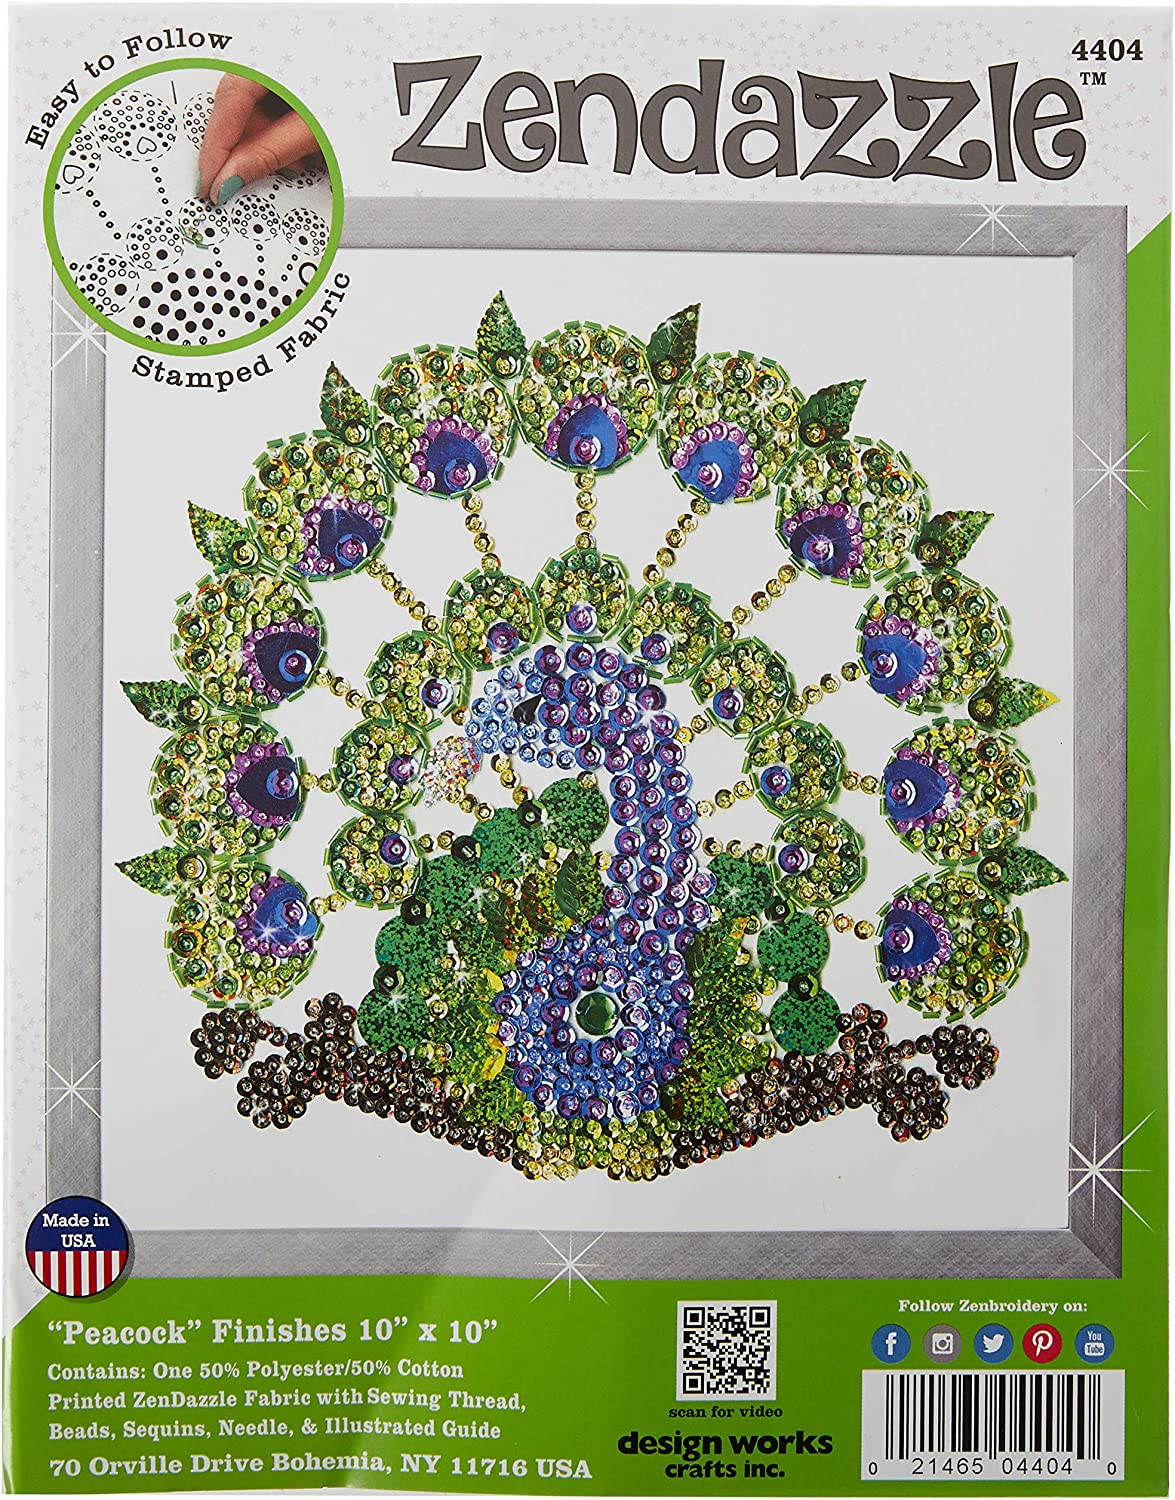 Tobin 4404 10 x 10 Peacock Design Works//Zendazzle Stamped Needleart Kit Blue